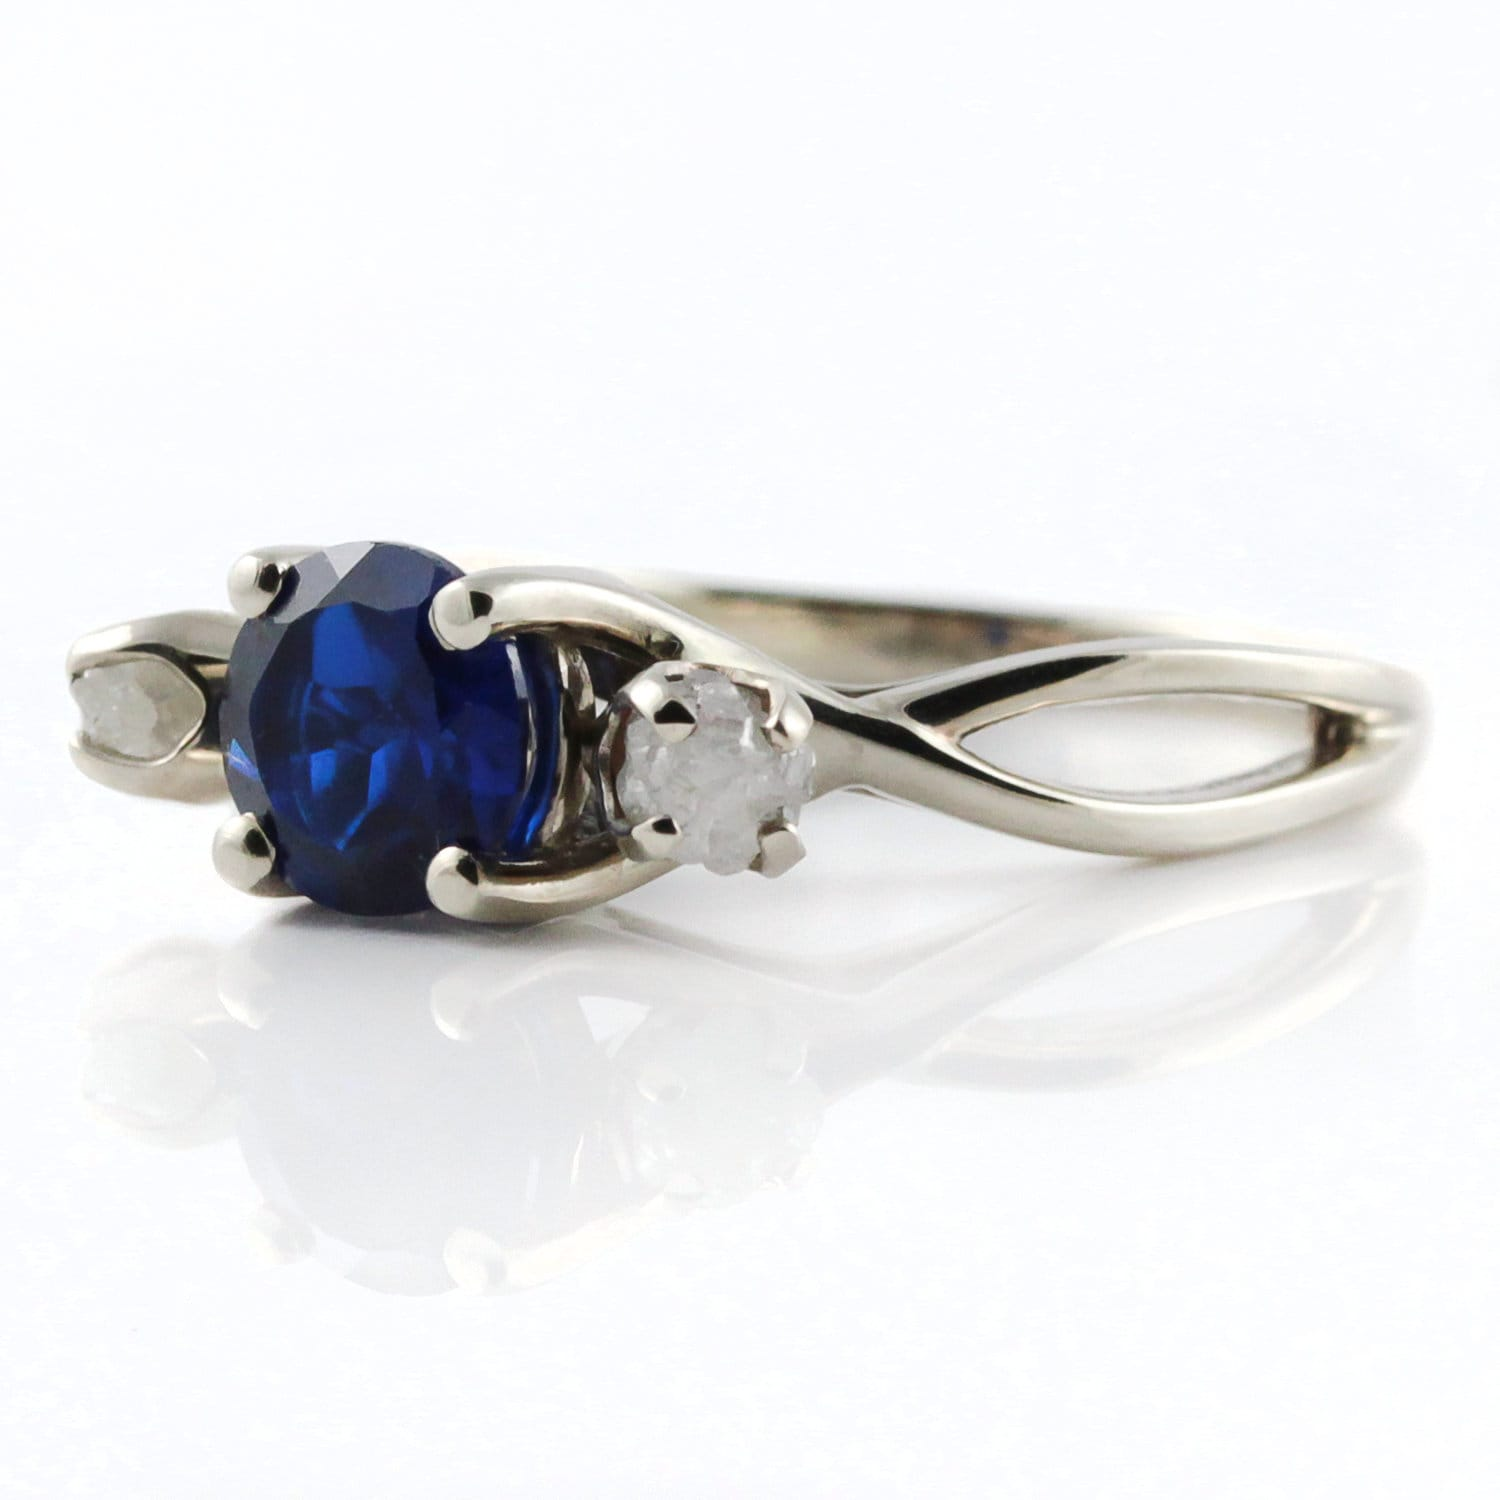 Sapphire Ring with Diamonds - 14K White Gold Engagement